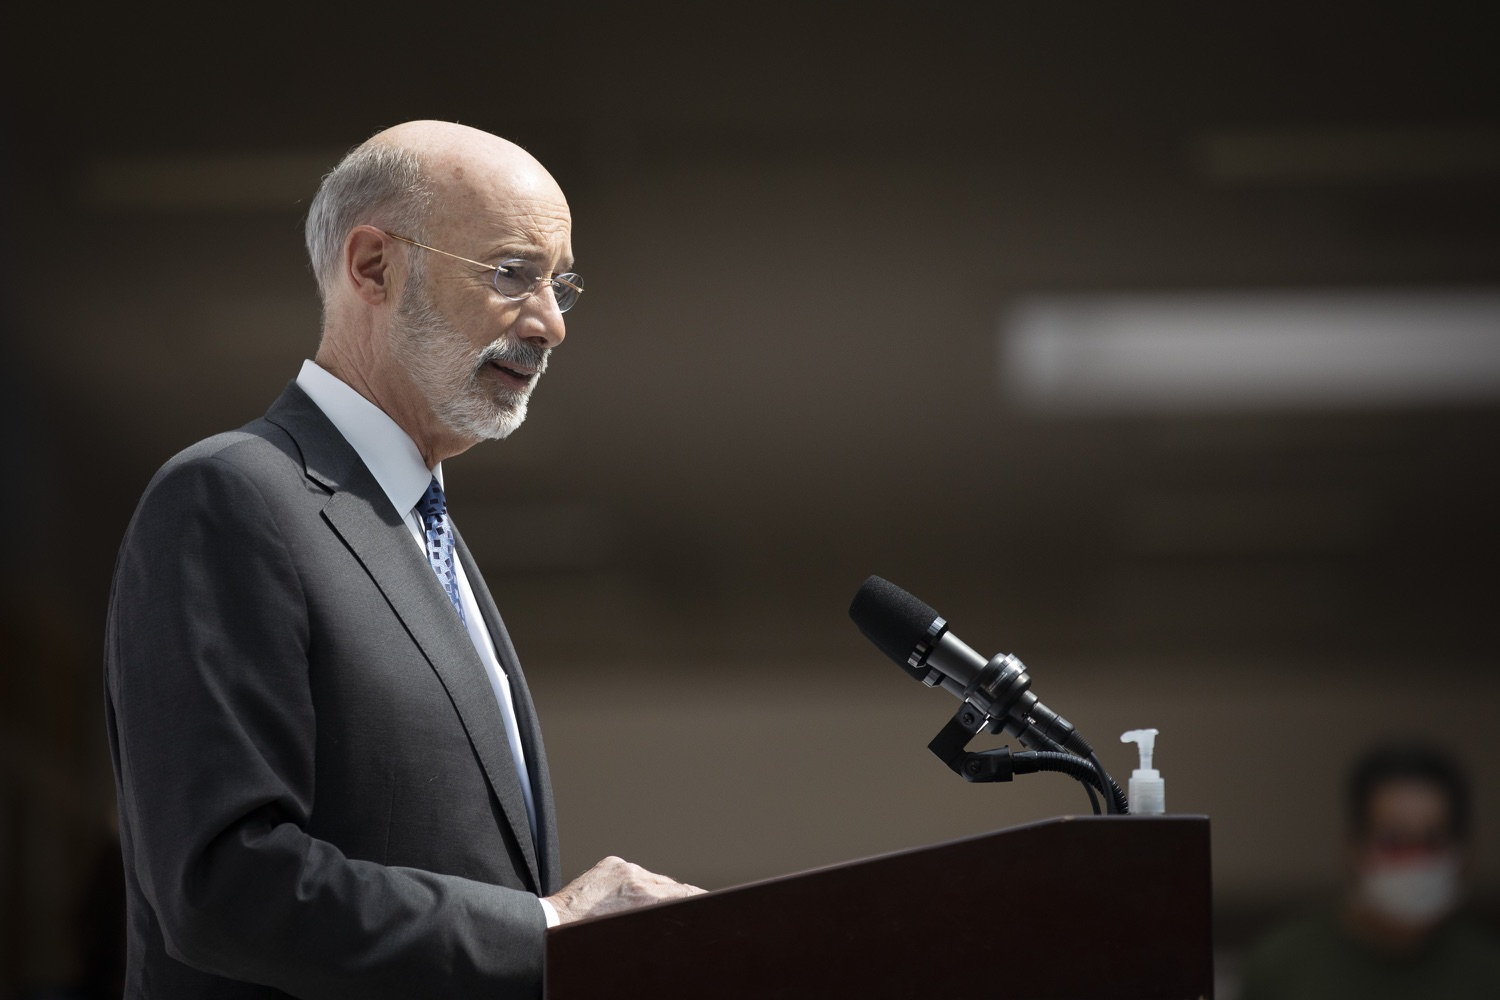 "<a href=""https://filesource.wostreaming.net/commonwealthofpa/photo/18712_gov_vaccines_dz_013.jpg"" target=""_blank"">⇣ Download Photo<br></a>Pennsylvania Governor Tom Wolf speaking with the press.  Continuing to visit COVID-19 vaccine clinics around the state, Governor Tom Wolf toured a clinic at the Washington Crown Center in Washington County today. The clinic is one of three operated by the Washington Health System (WHS) serving rural communities in southwestern Pennsylvania.  North Franklin Township, PA  April 28, 2021"